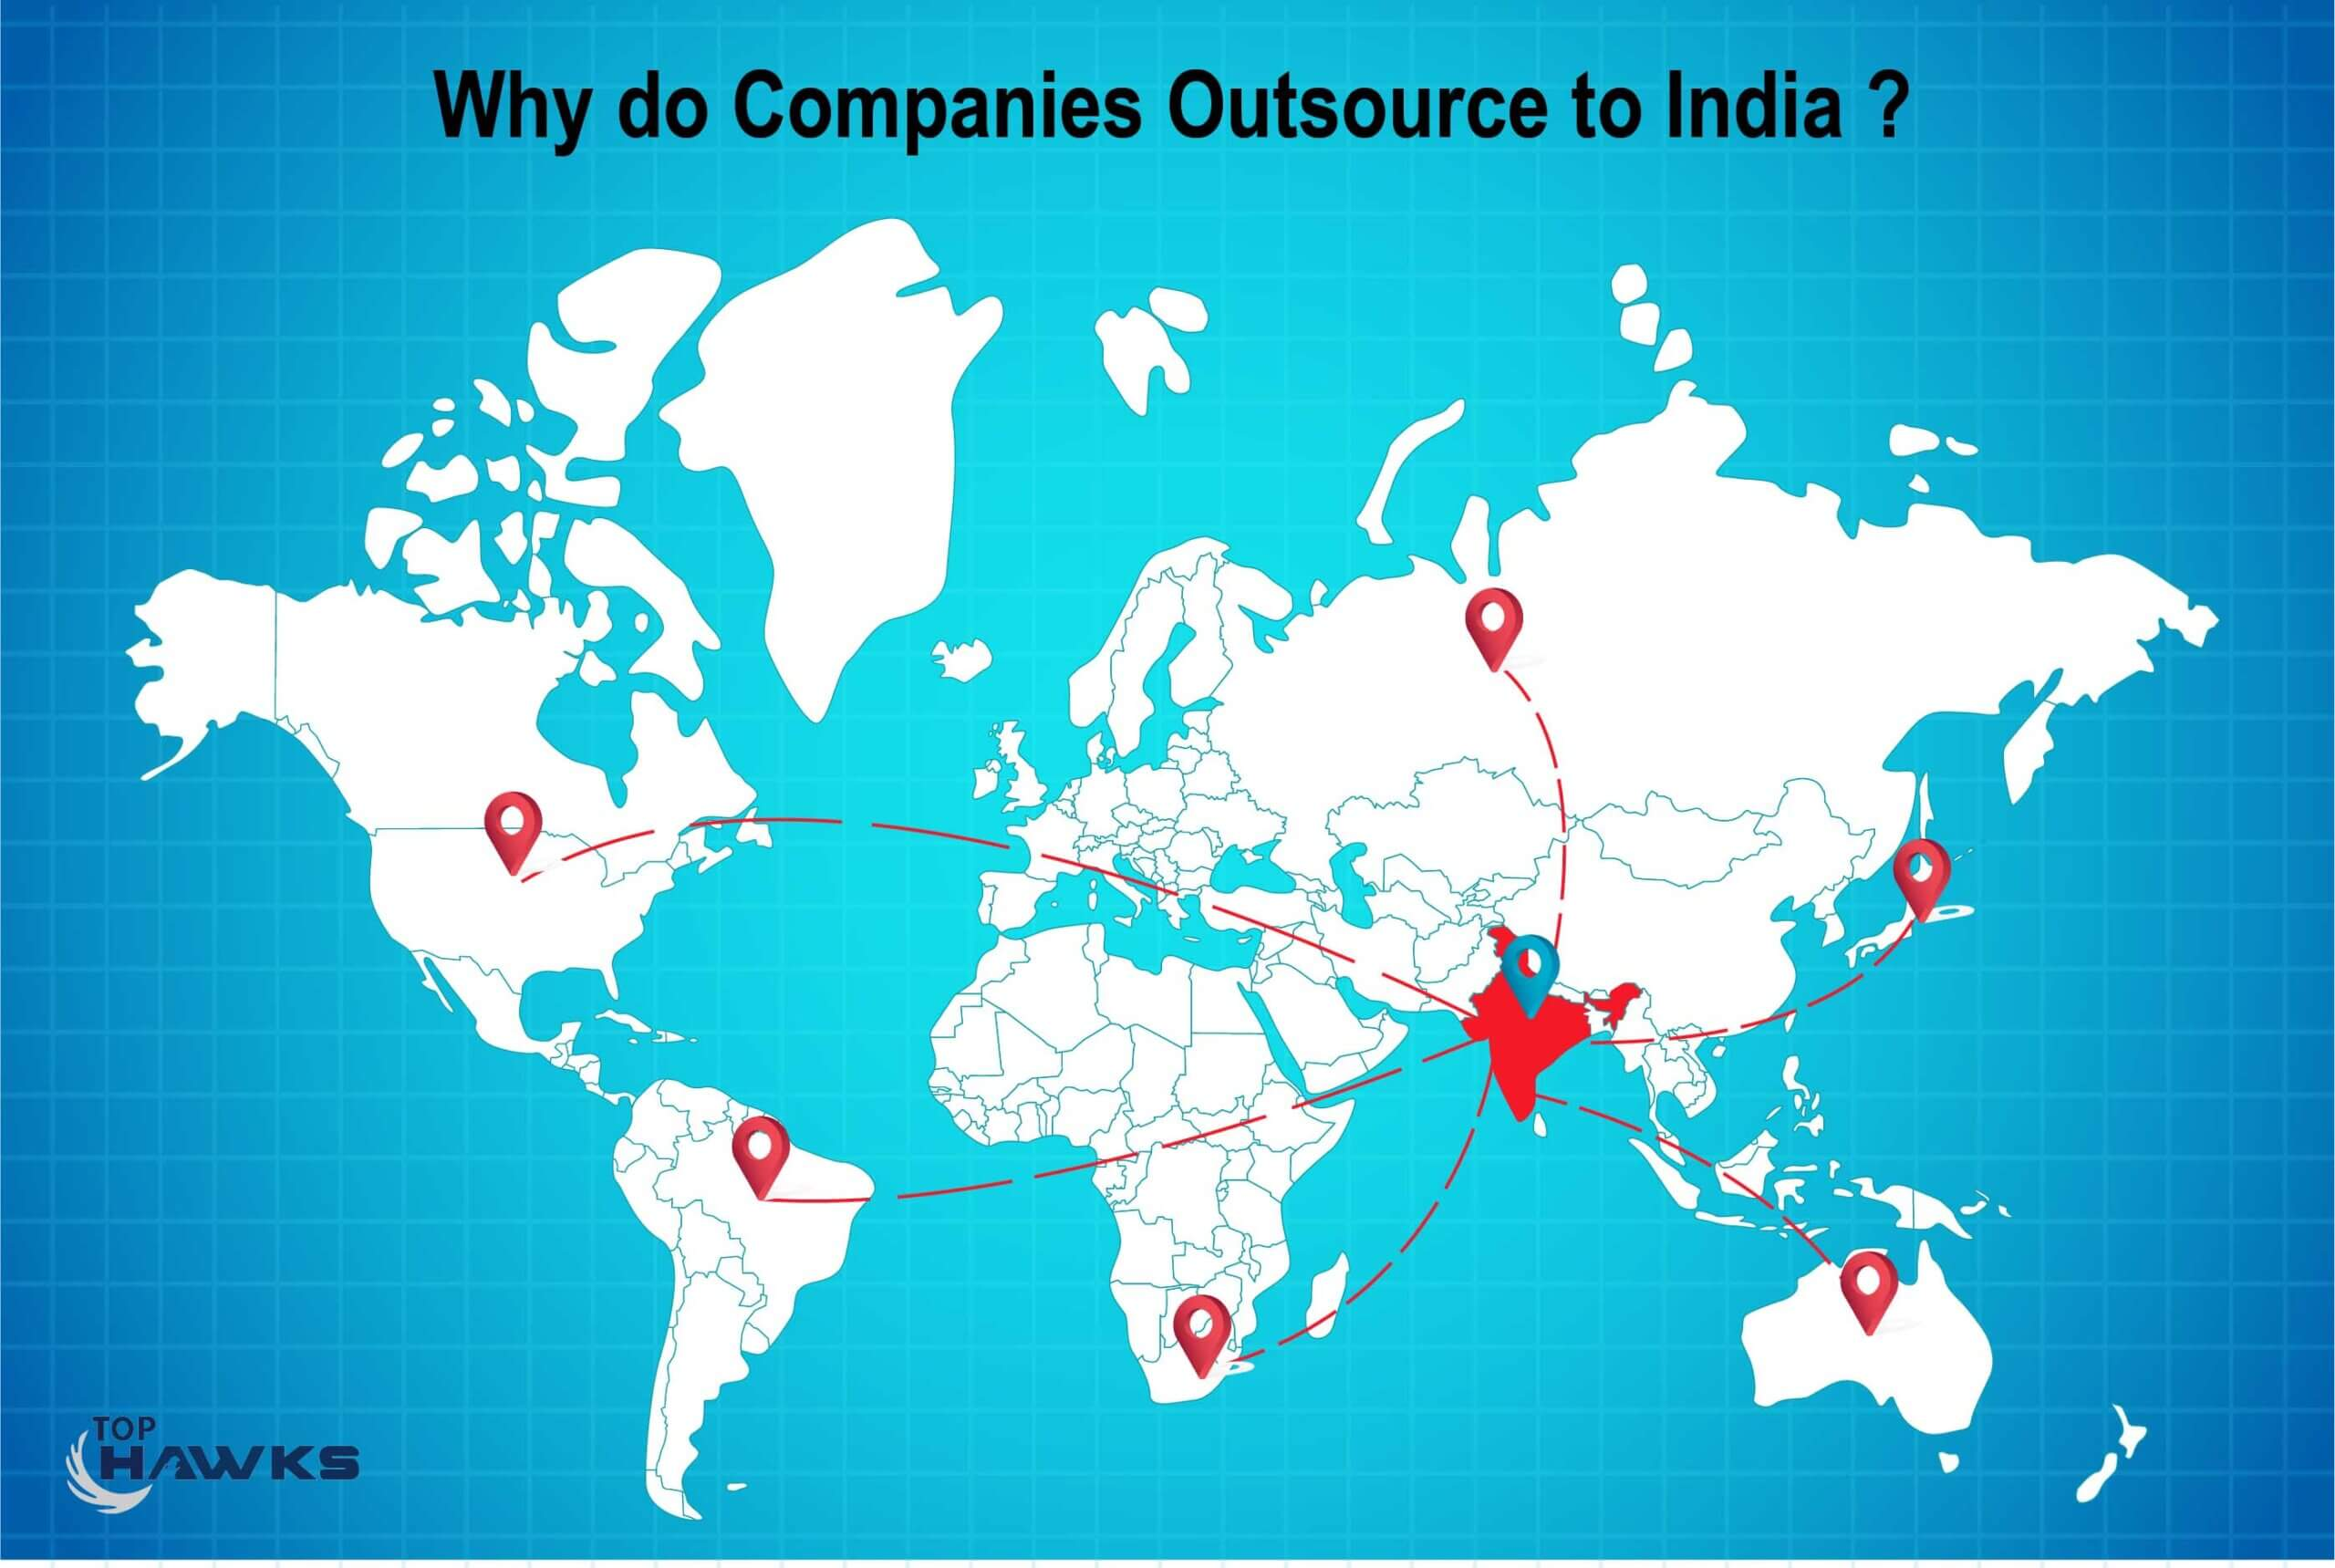 Why do companies outsource to India?